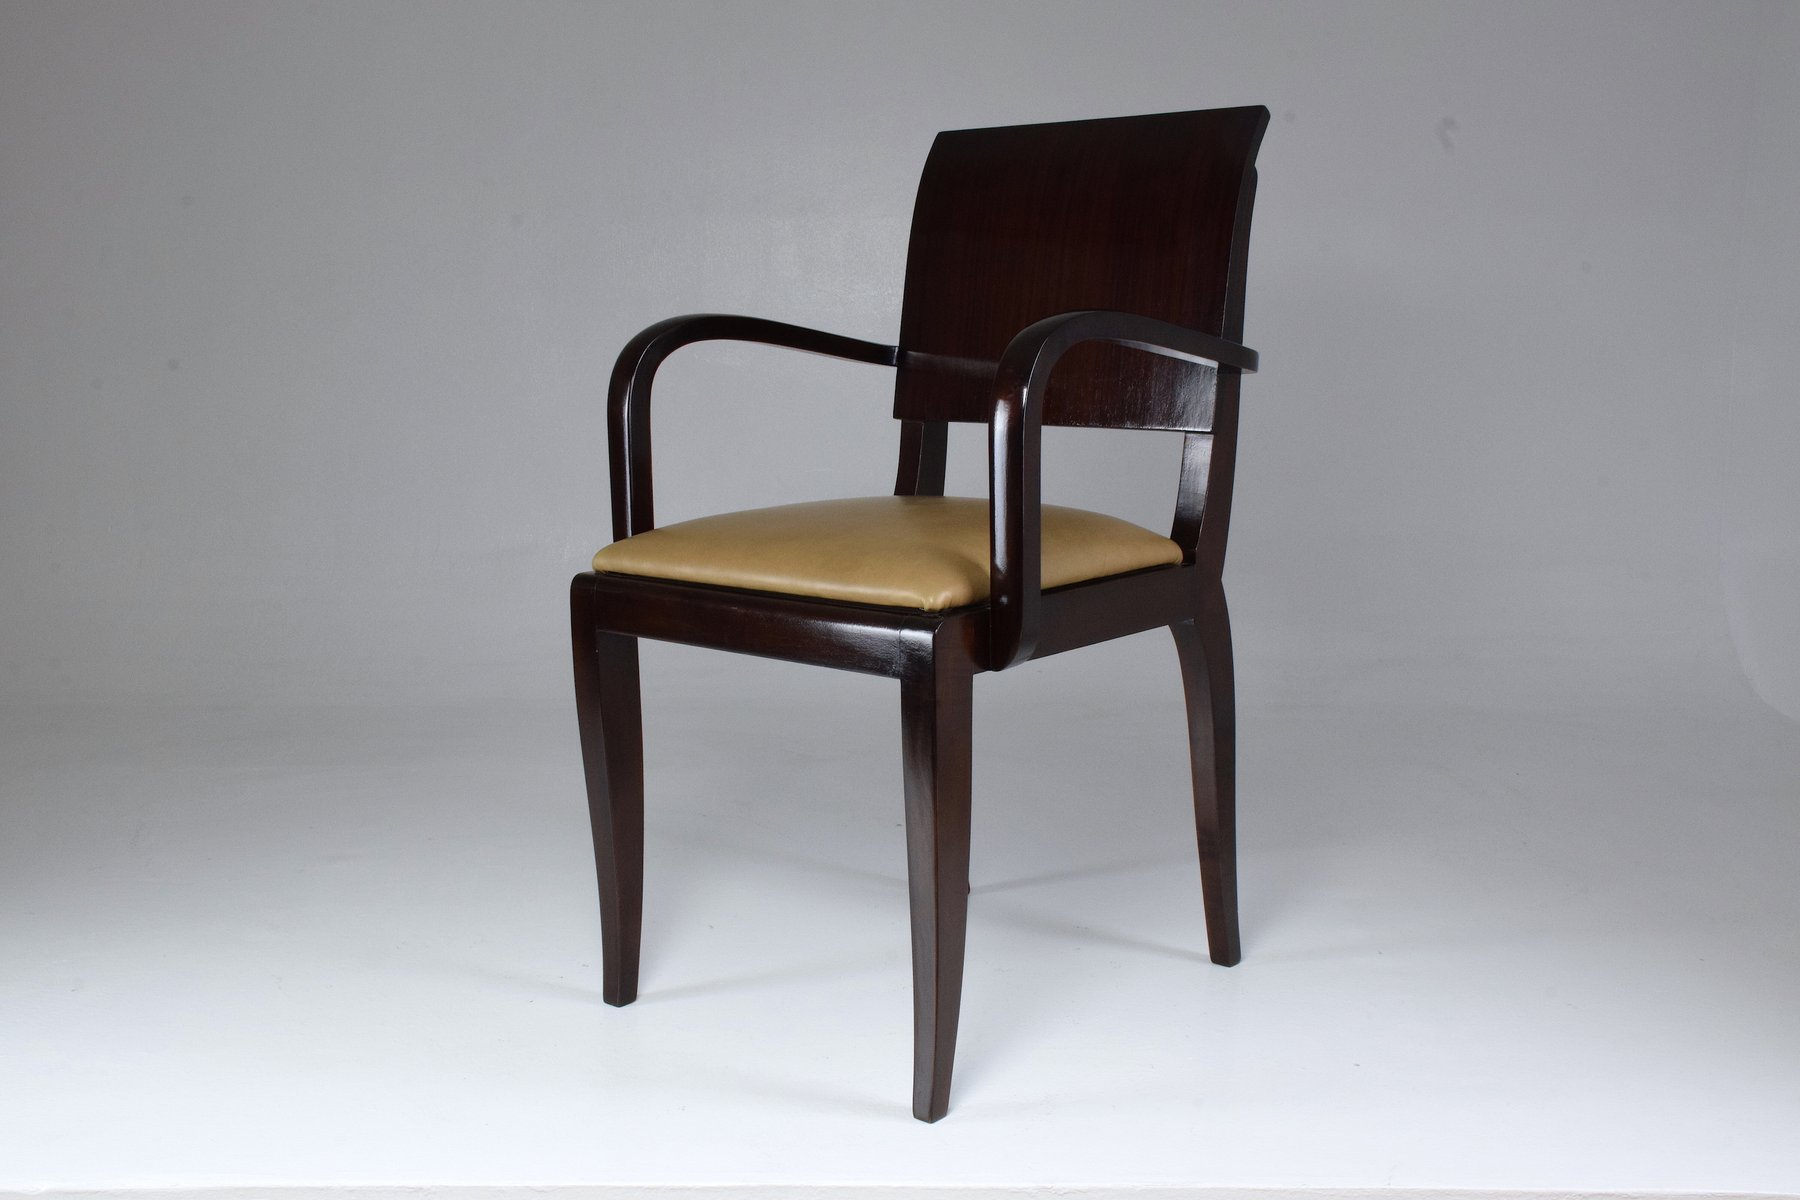 Vintage French Art Deco Chair 1940s For Sale At Pamono